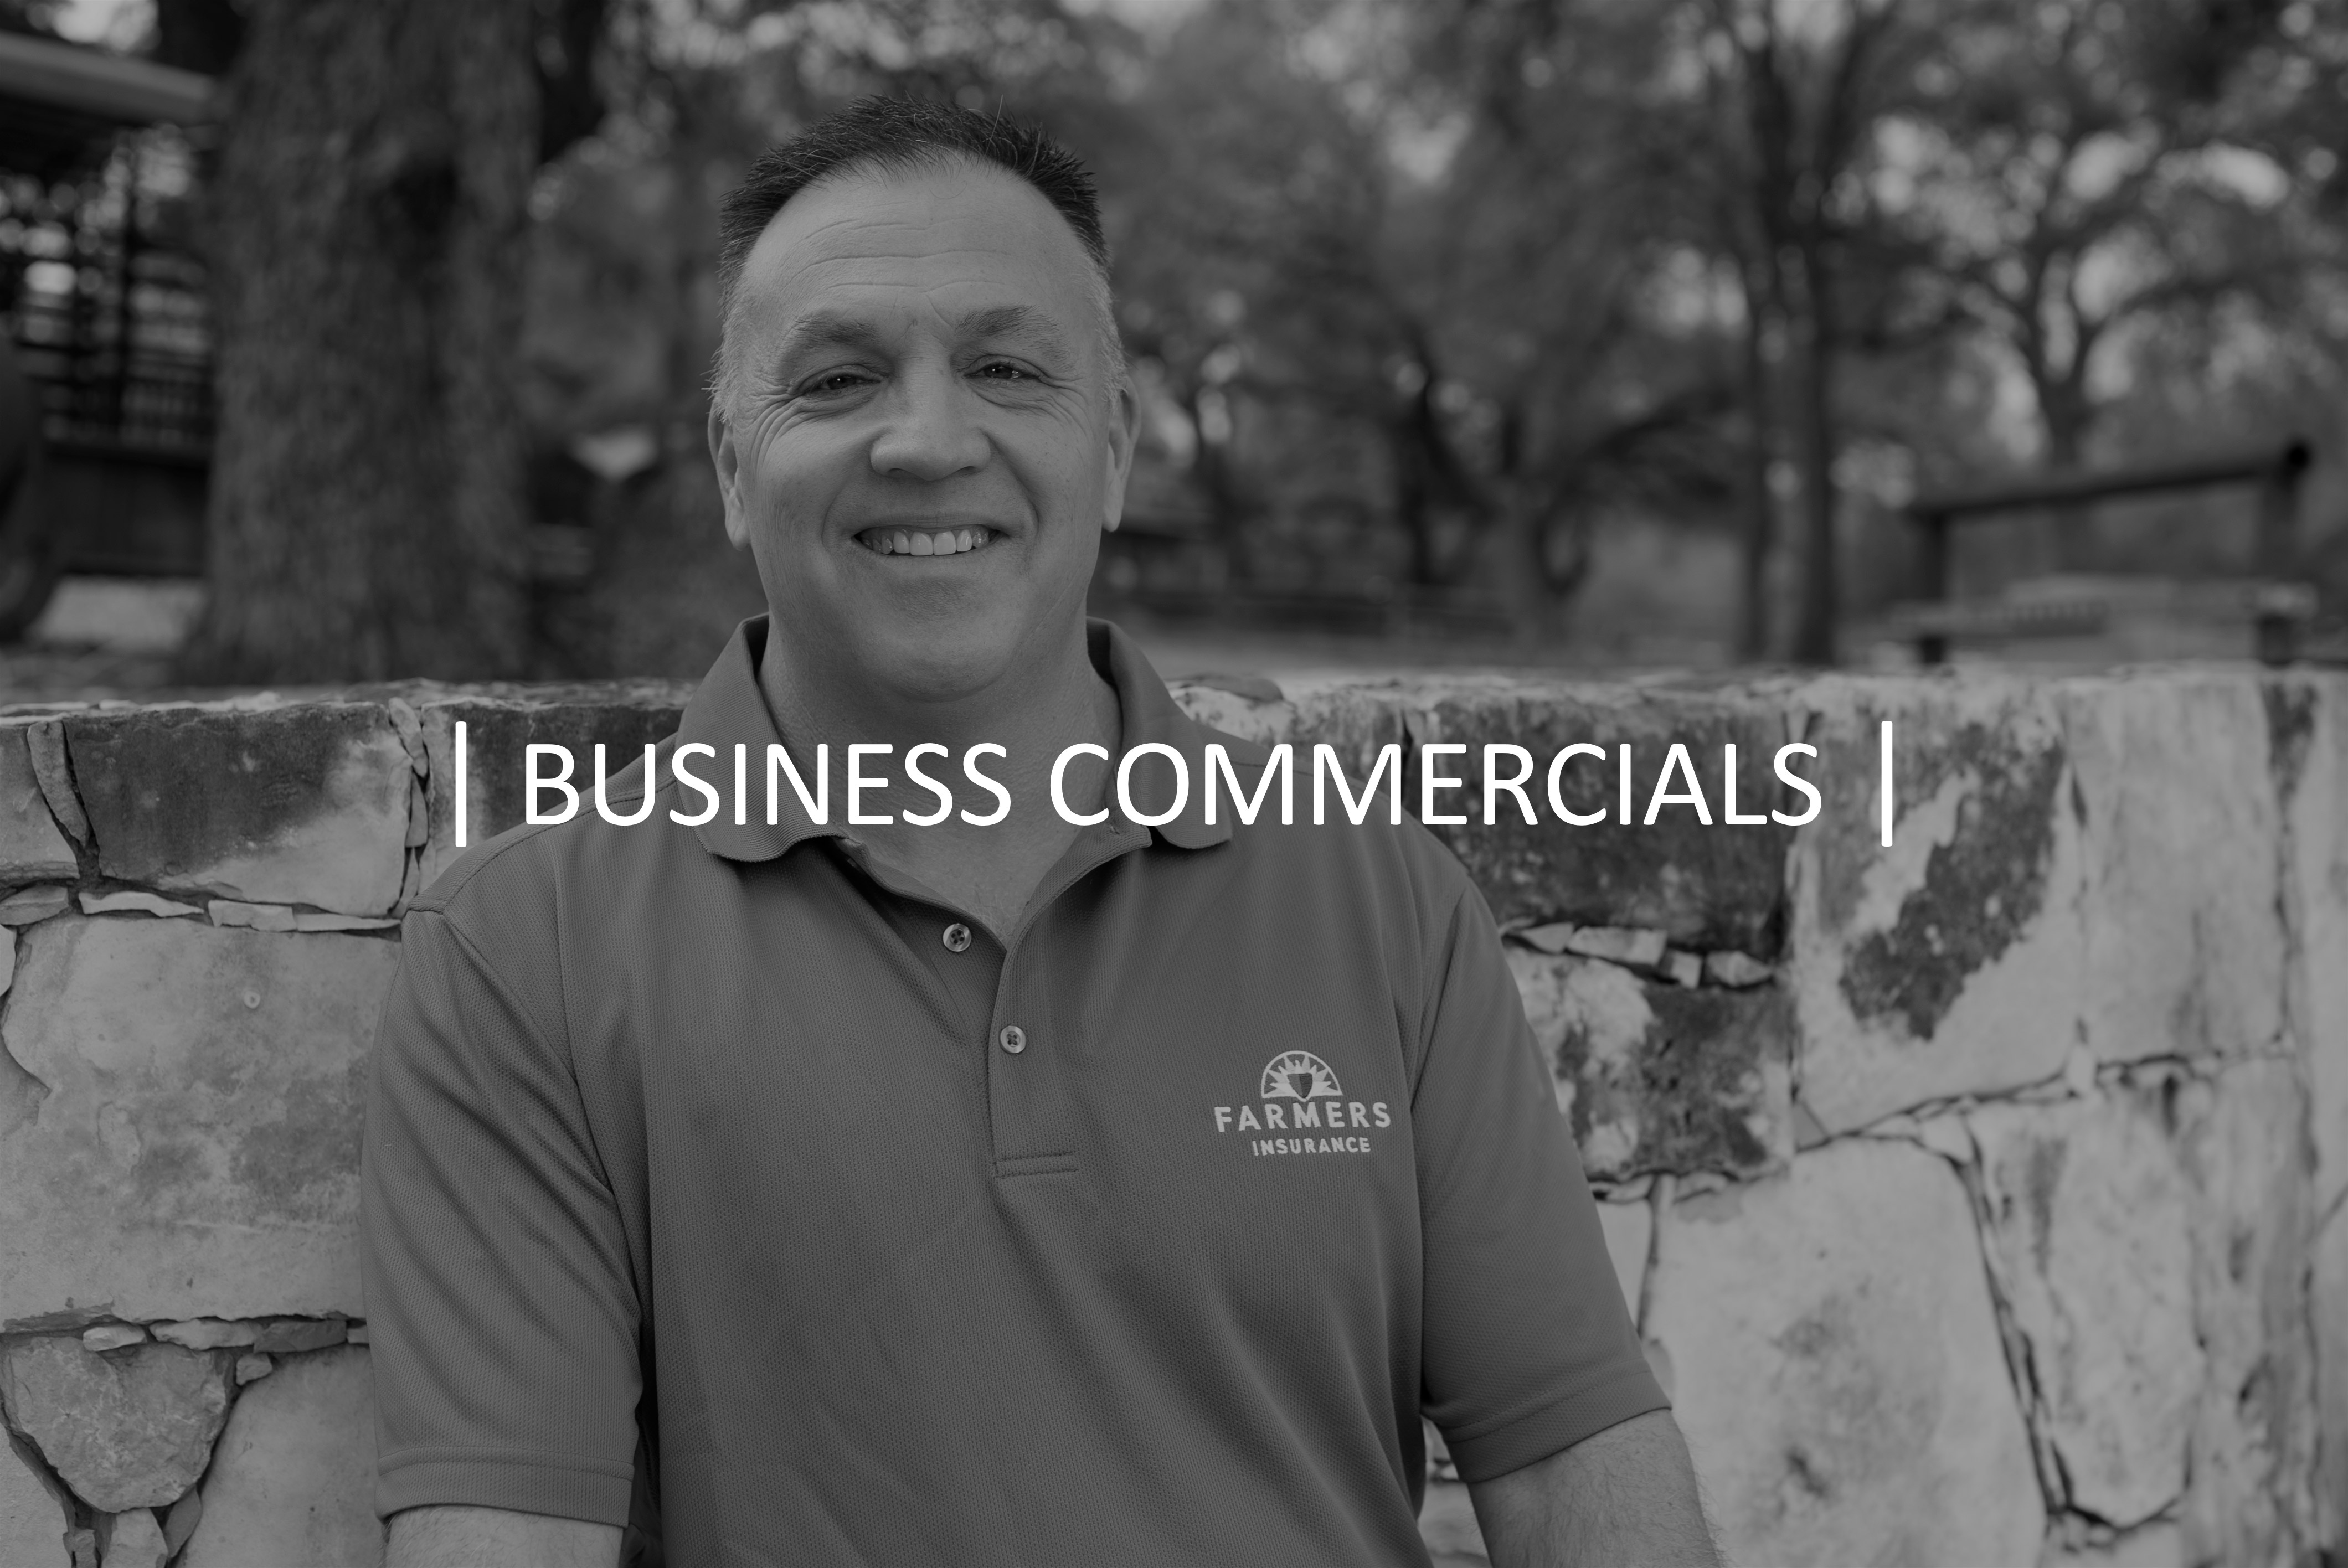 Business-Commercials